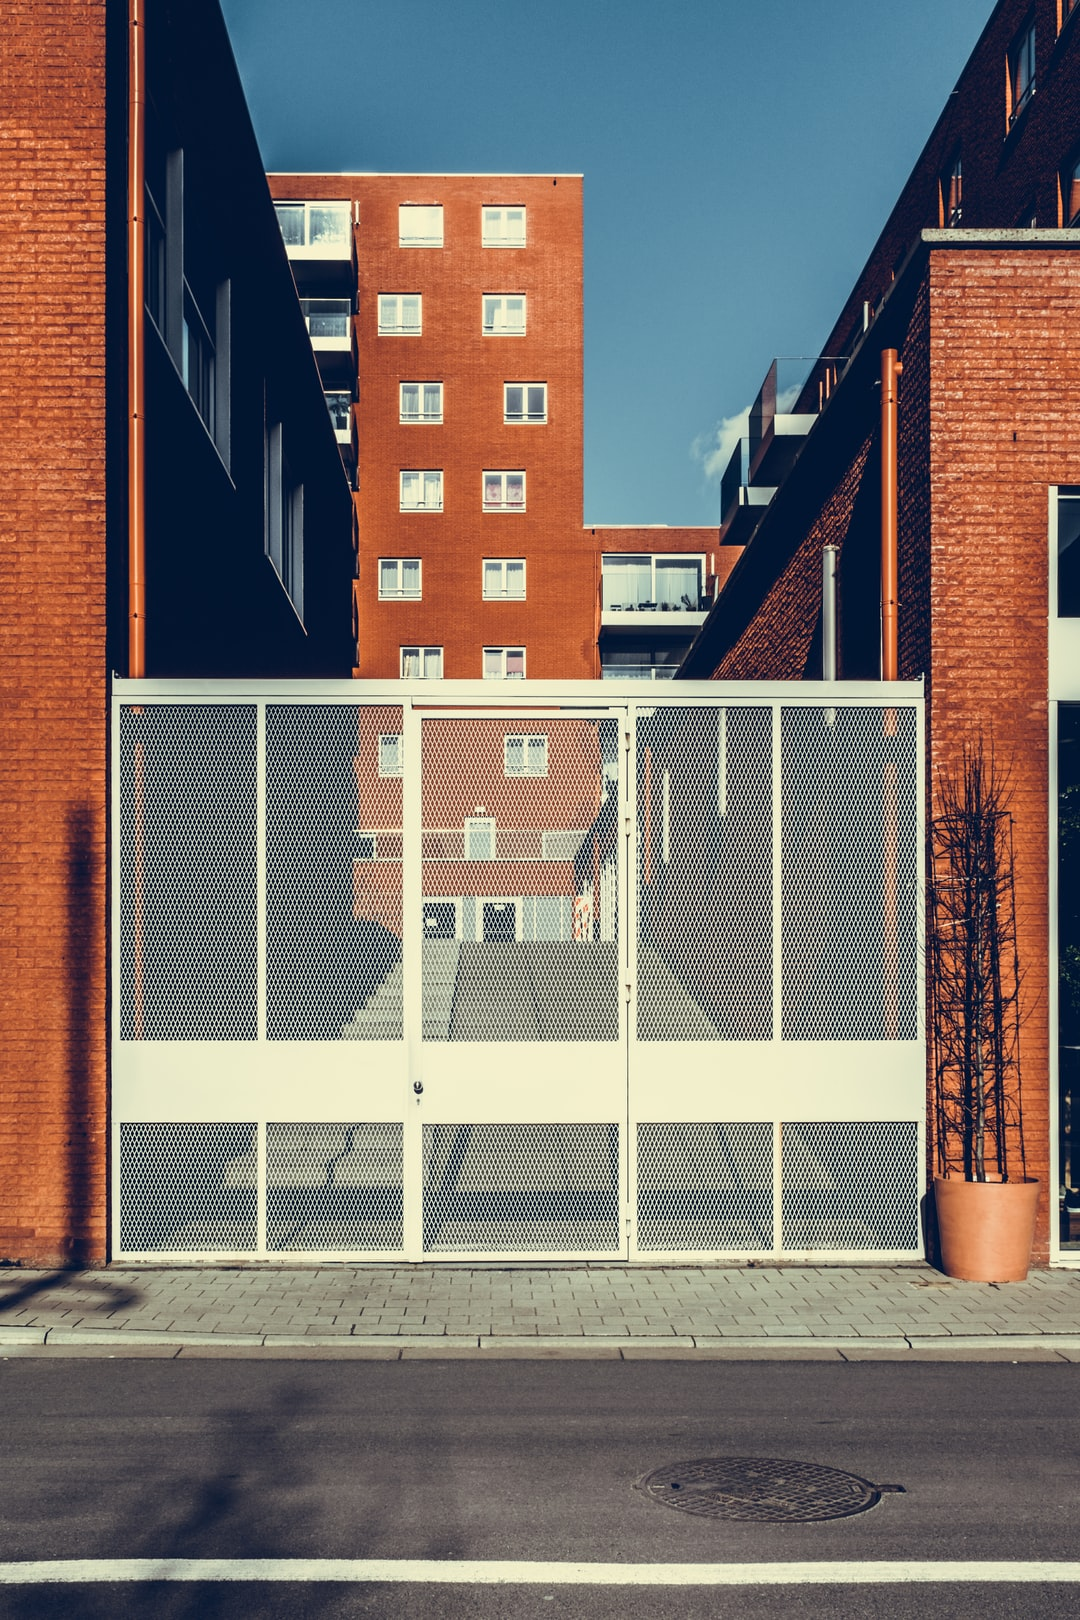 Important factors to consider when purchasing commercial property